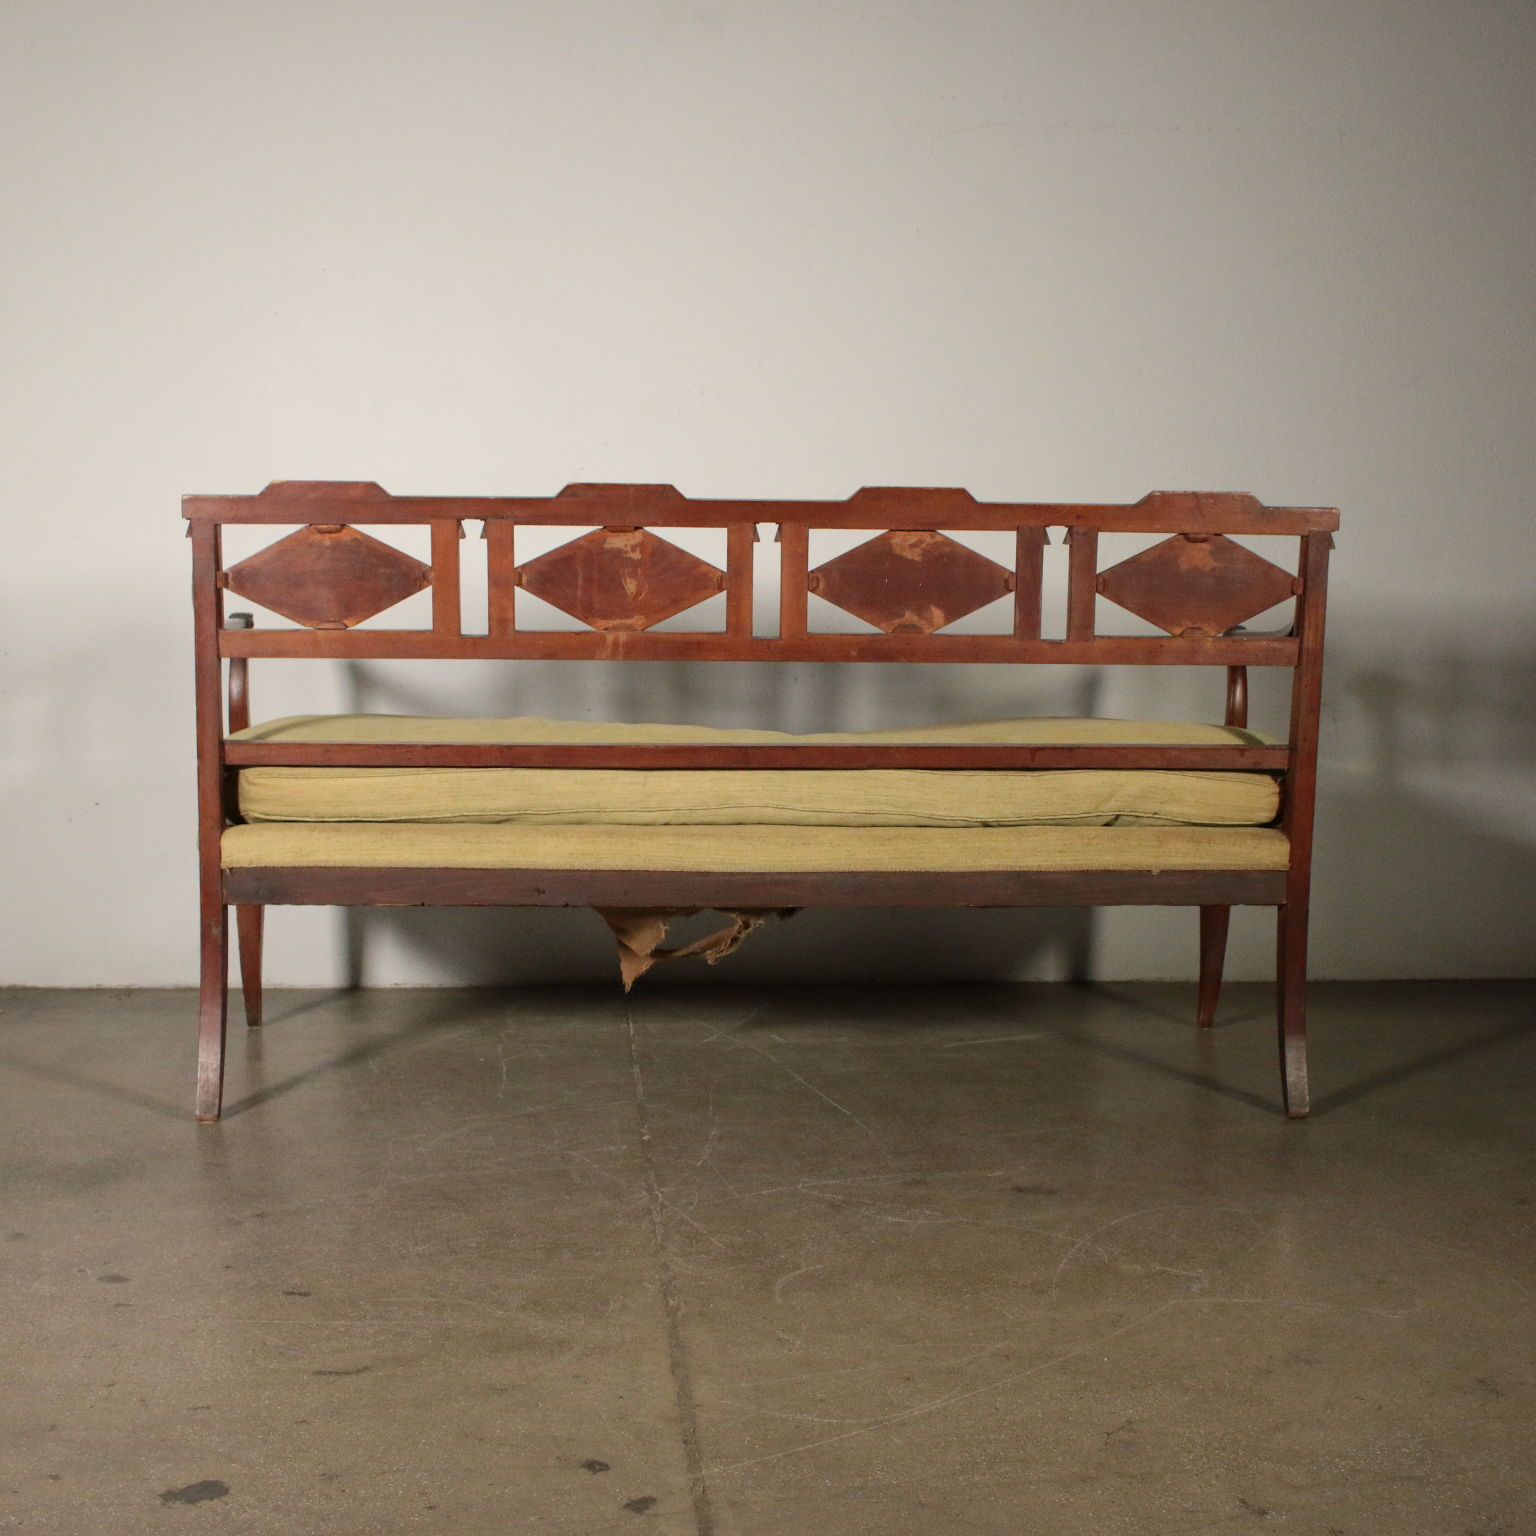 Elegant Sofa Cherry Wood Italy Early 1800s 11